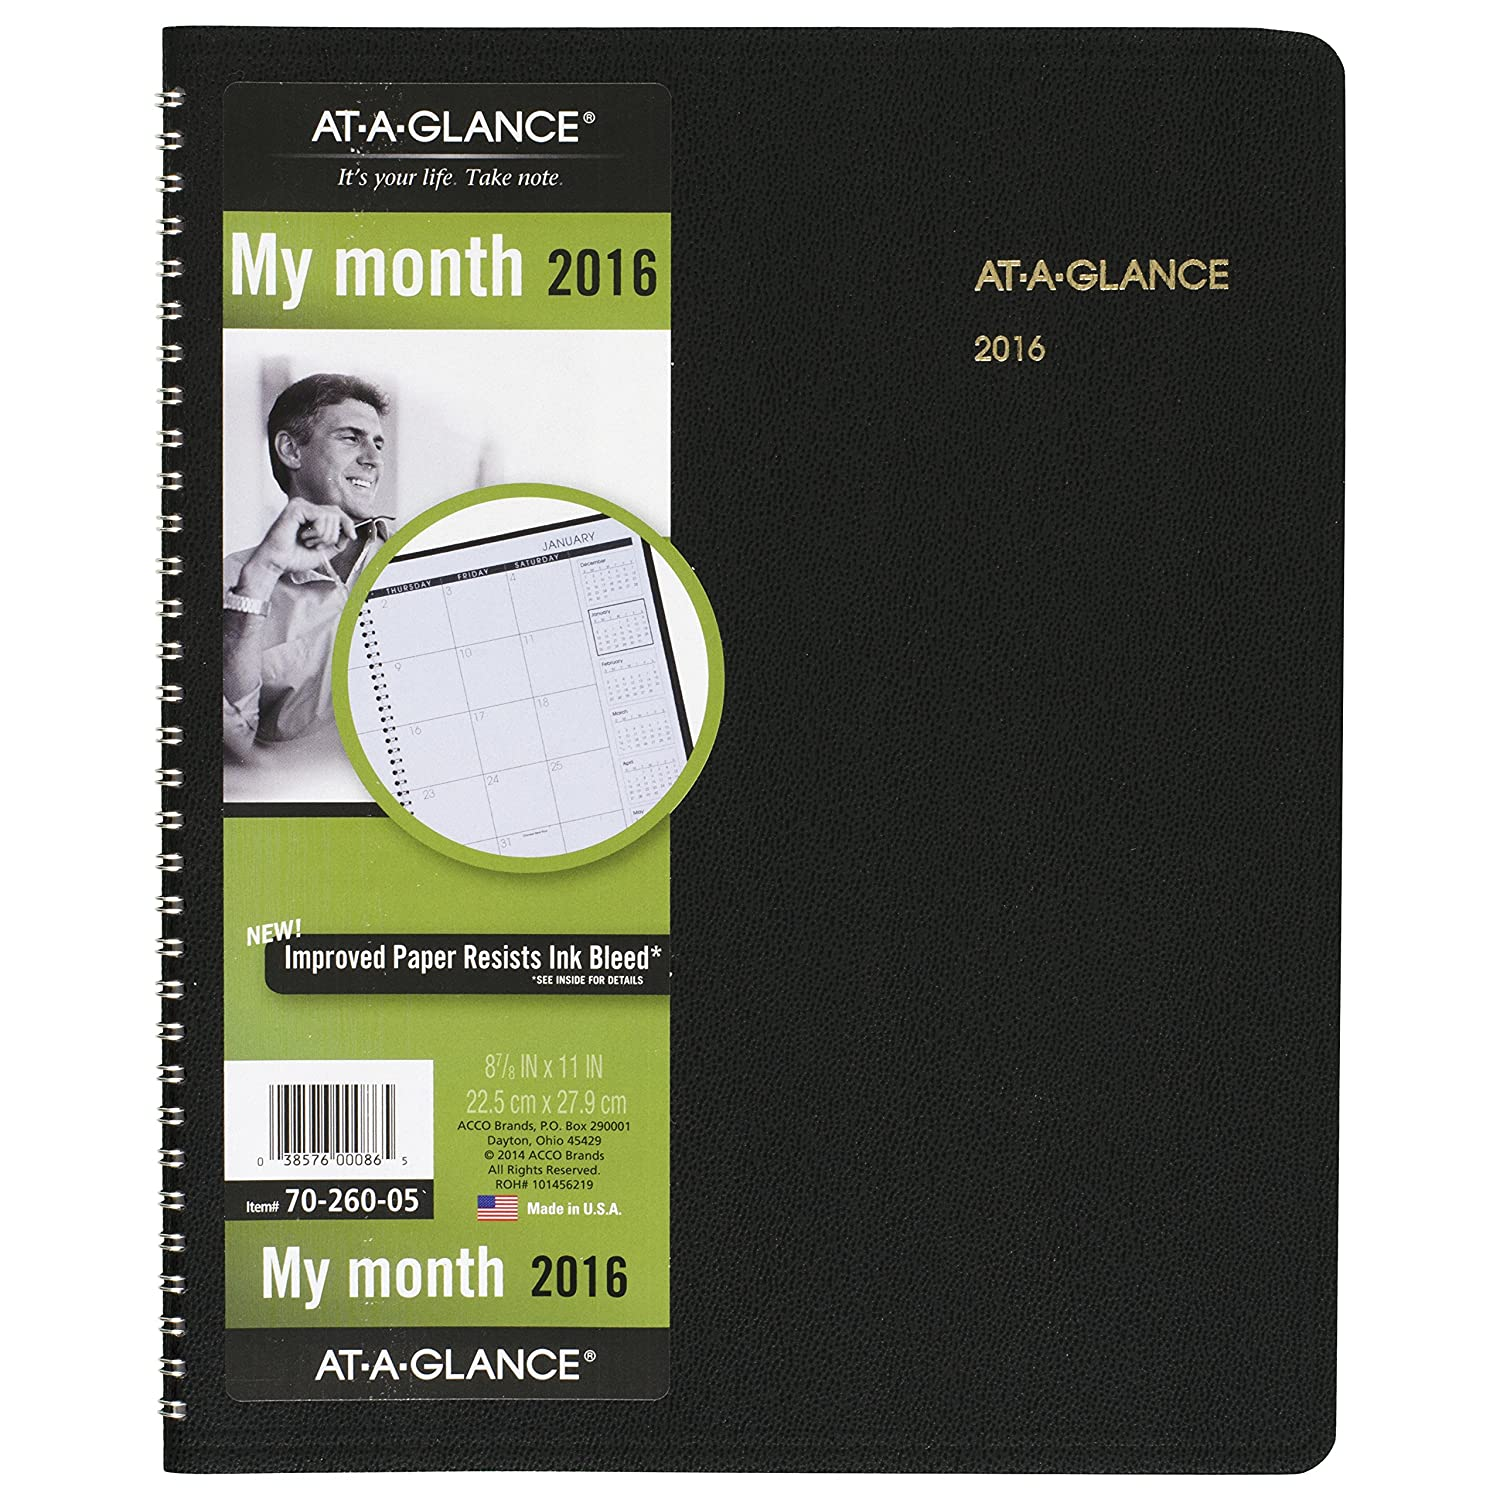 1 Notebook 565108 B00w1w6ncy At A Glance Monthly Planner 2016 15 Months 9 X 11 Inch Page Size